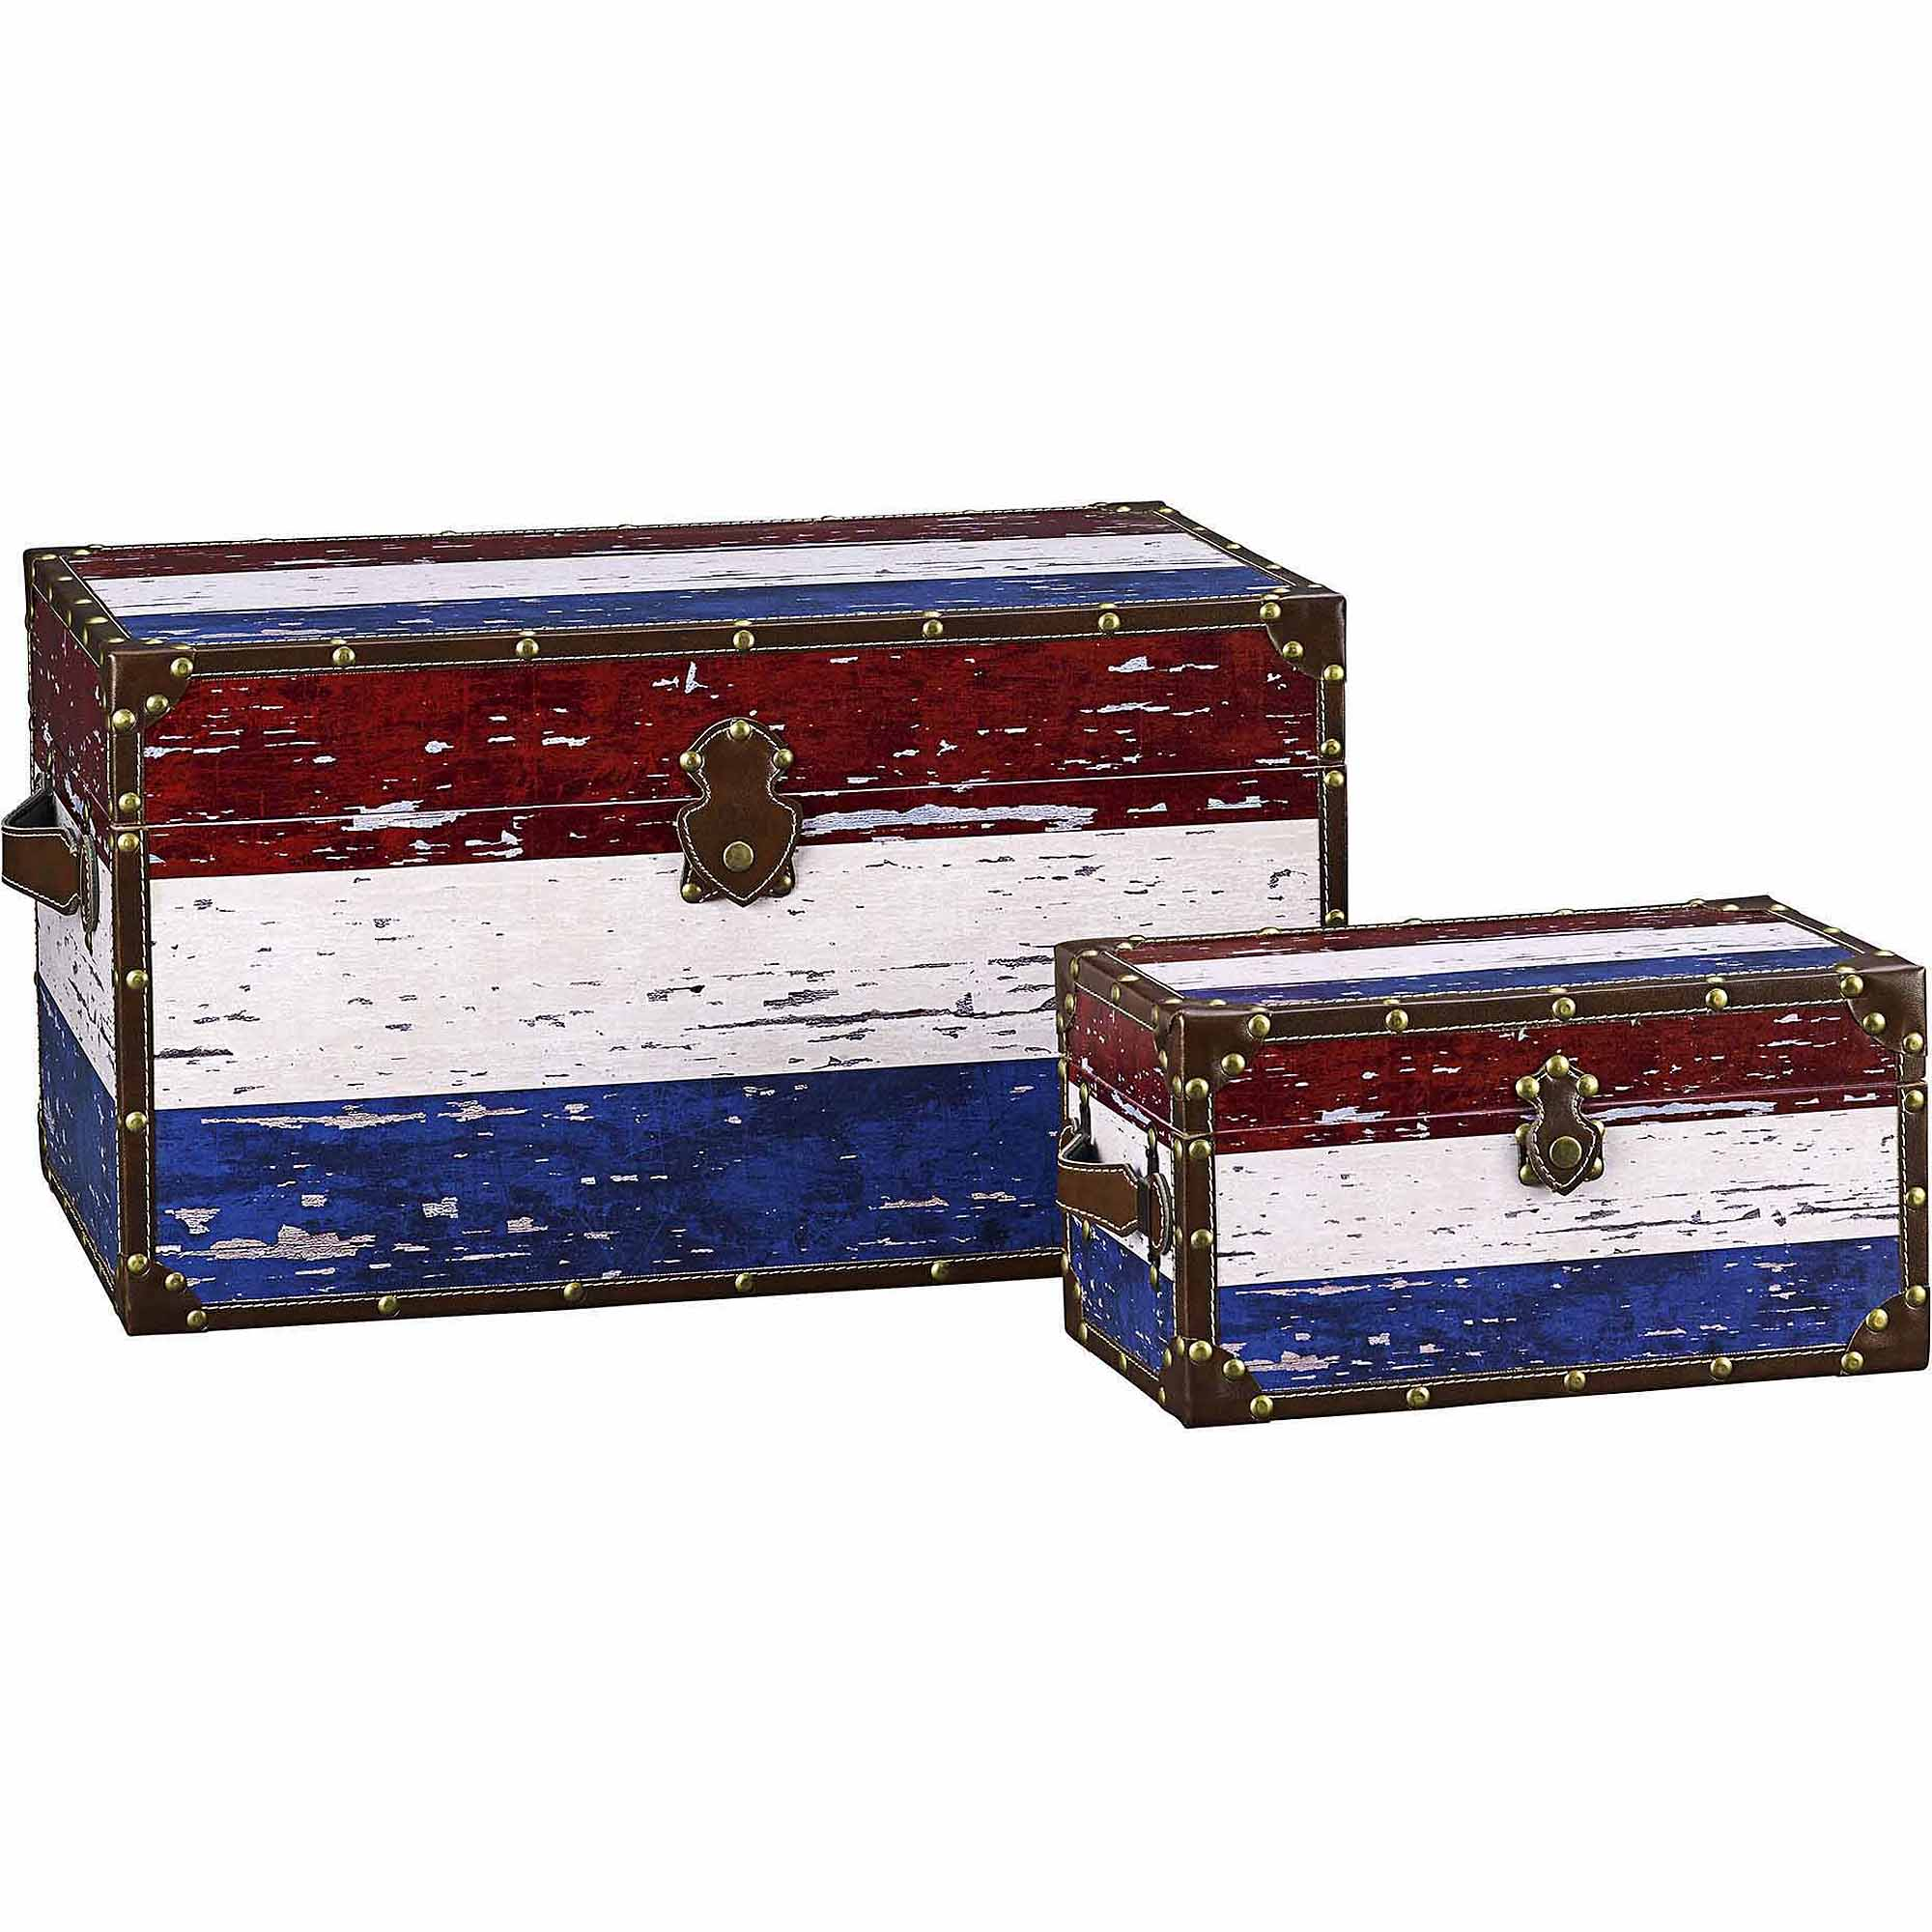 Household Essential 9256-1 RedWhite & Blue Design Trunk-Nested-Large & Small